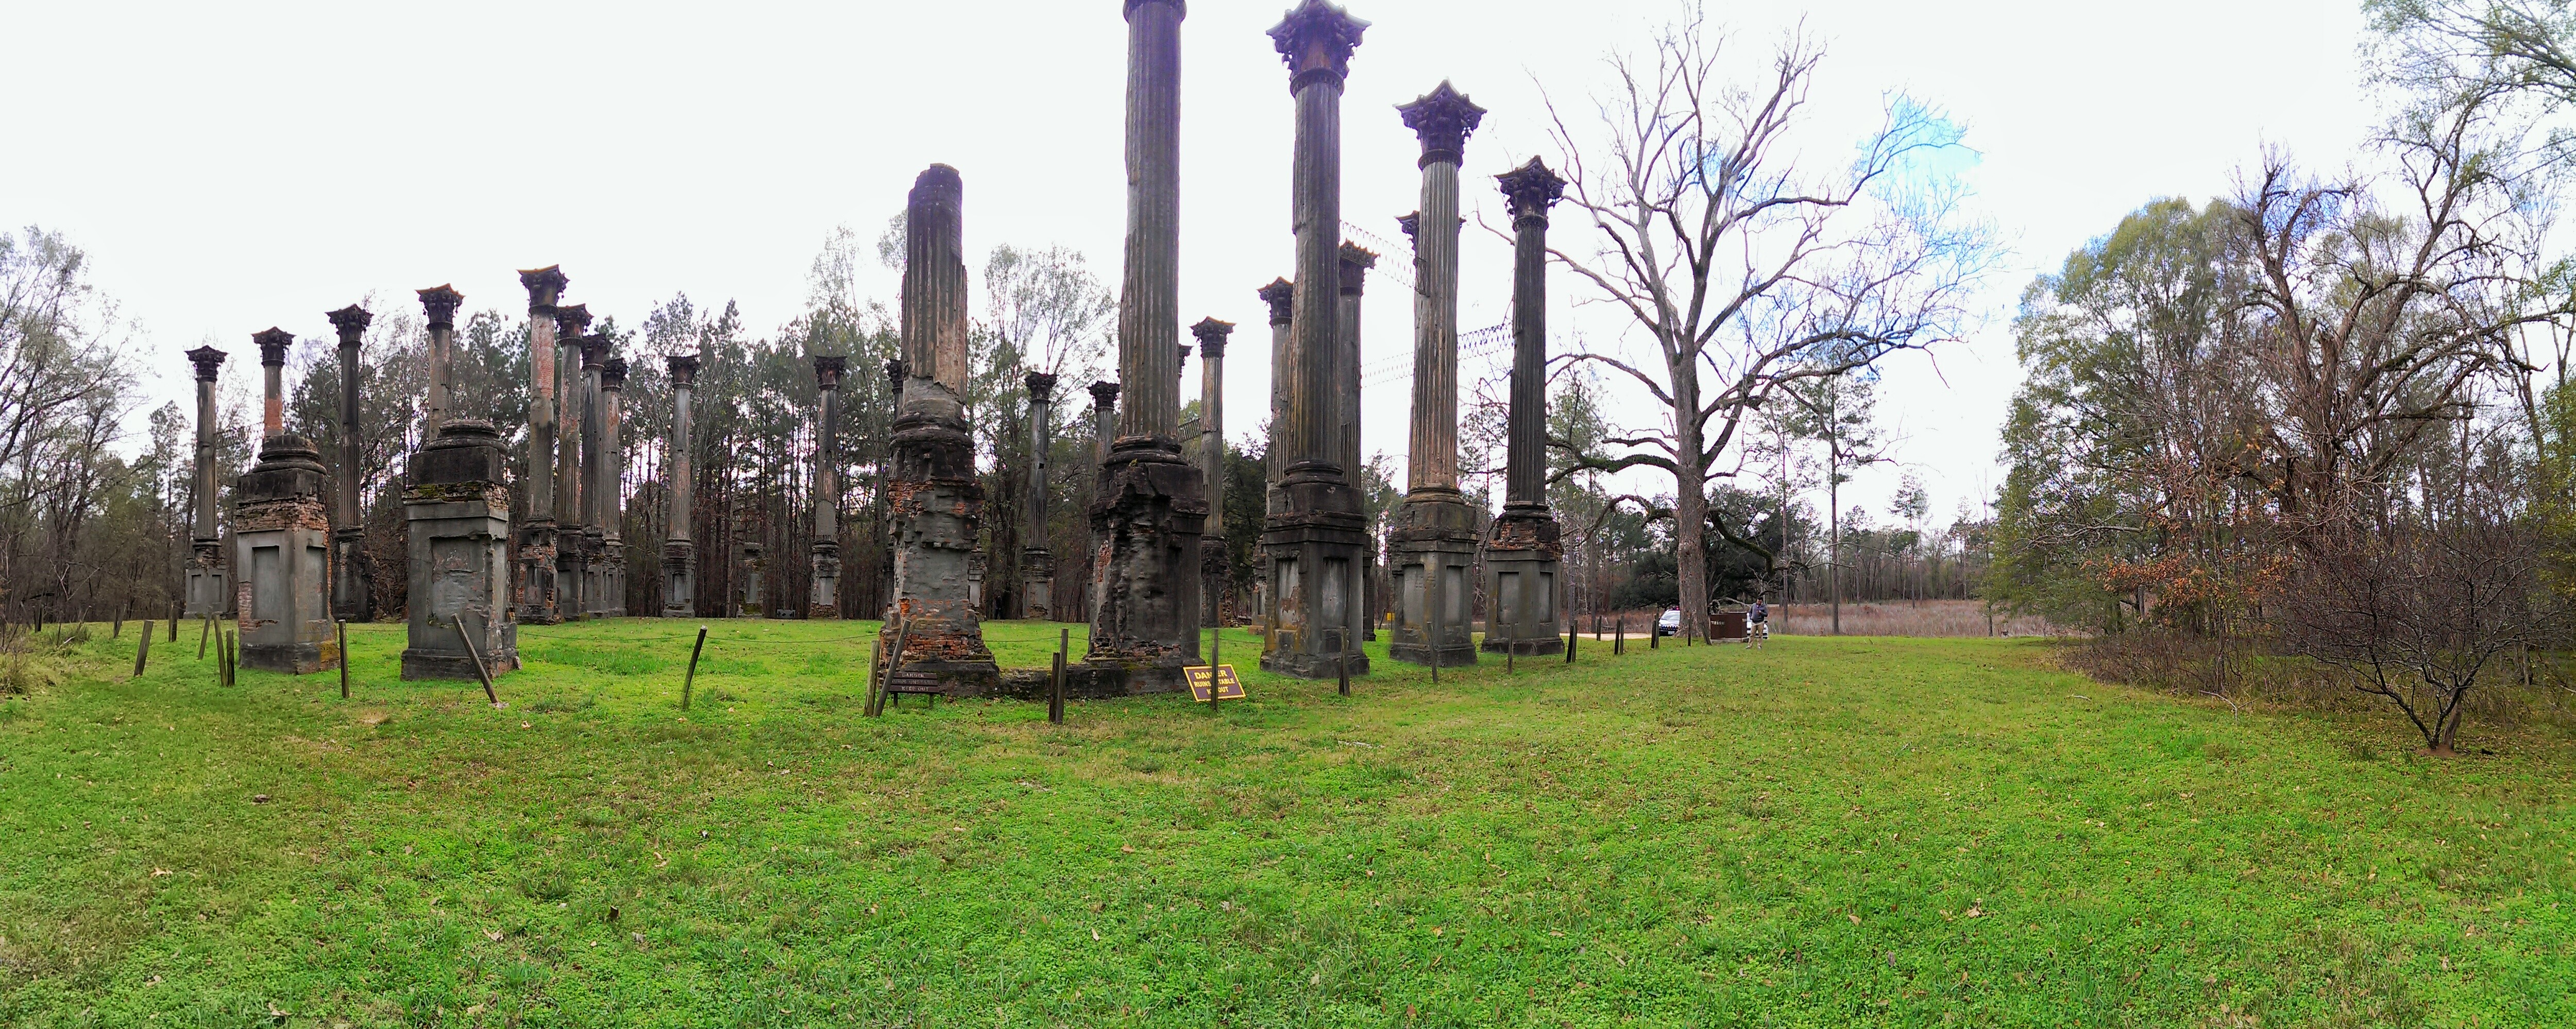 Carry It Like Harry - Haunted Sites along the Mississippi: Visit Vicksburg, Rocky Springs and the Windsor Ruins